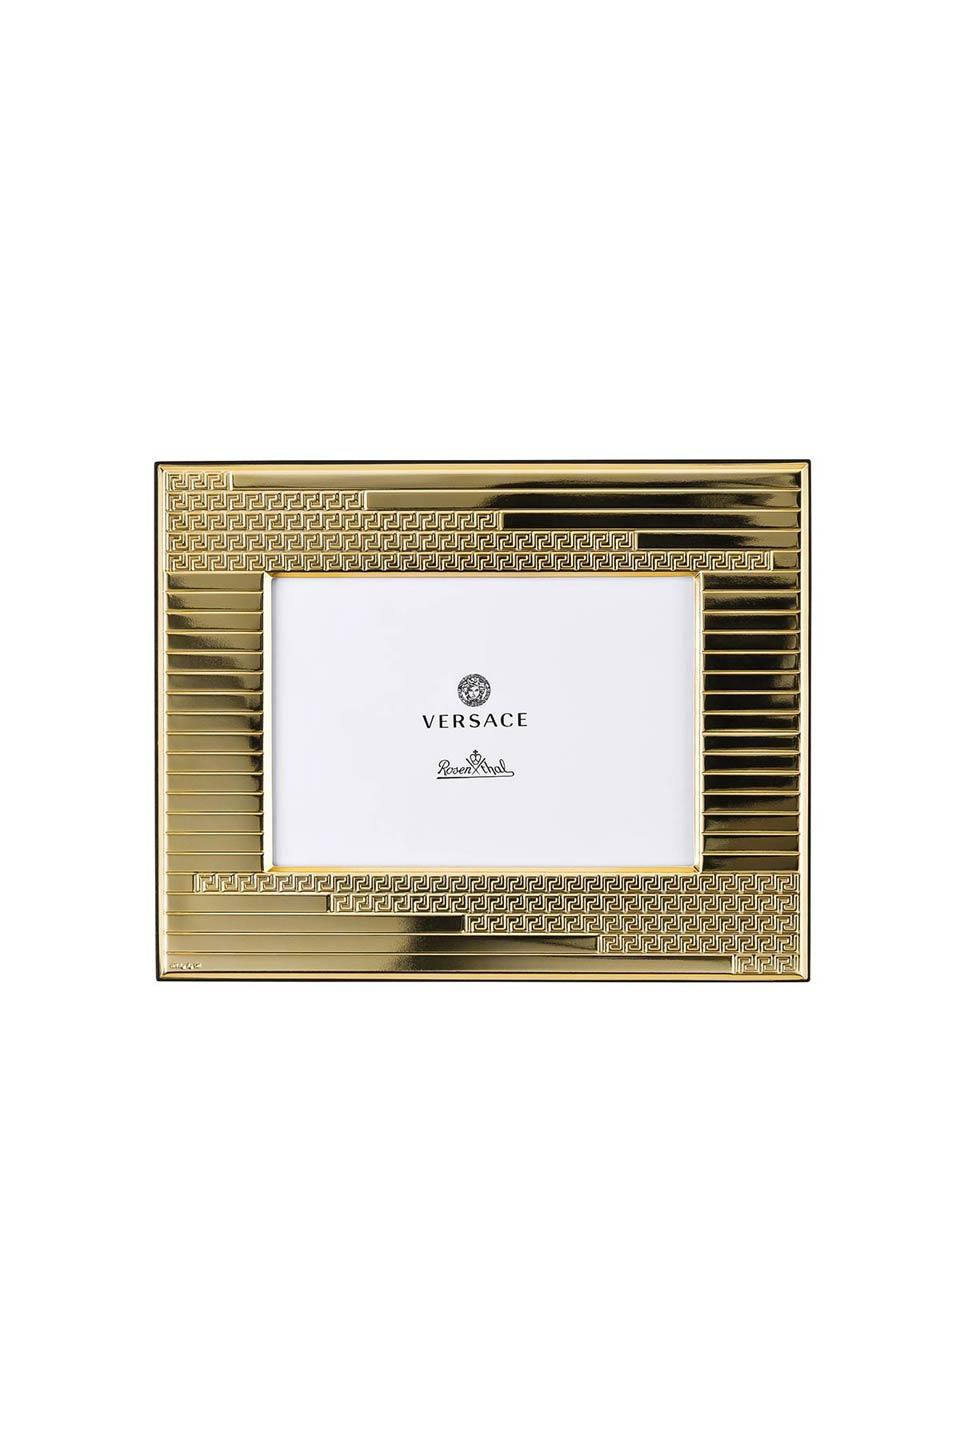 Versace By Rosenthal Versace Frames Vhf2 Gold Picture Frame